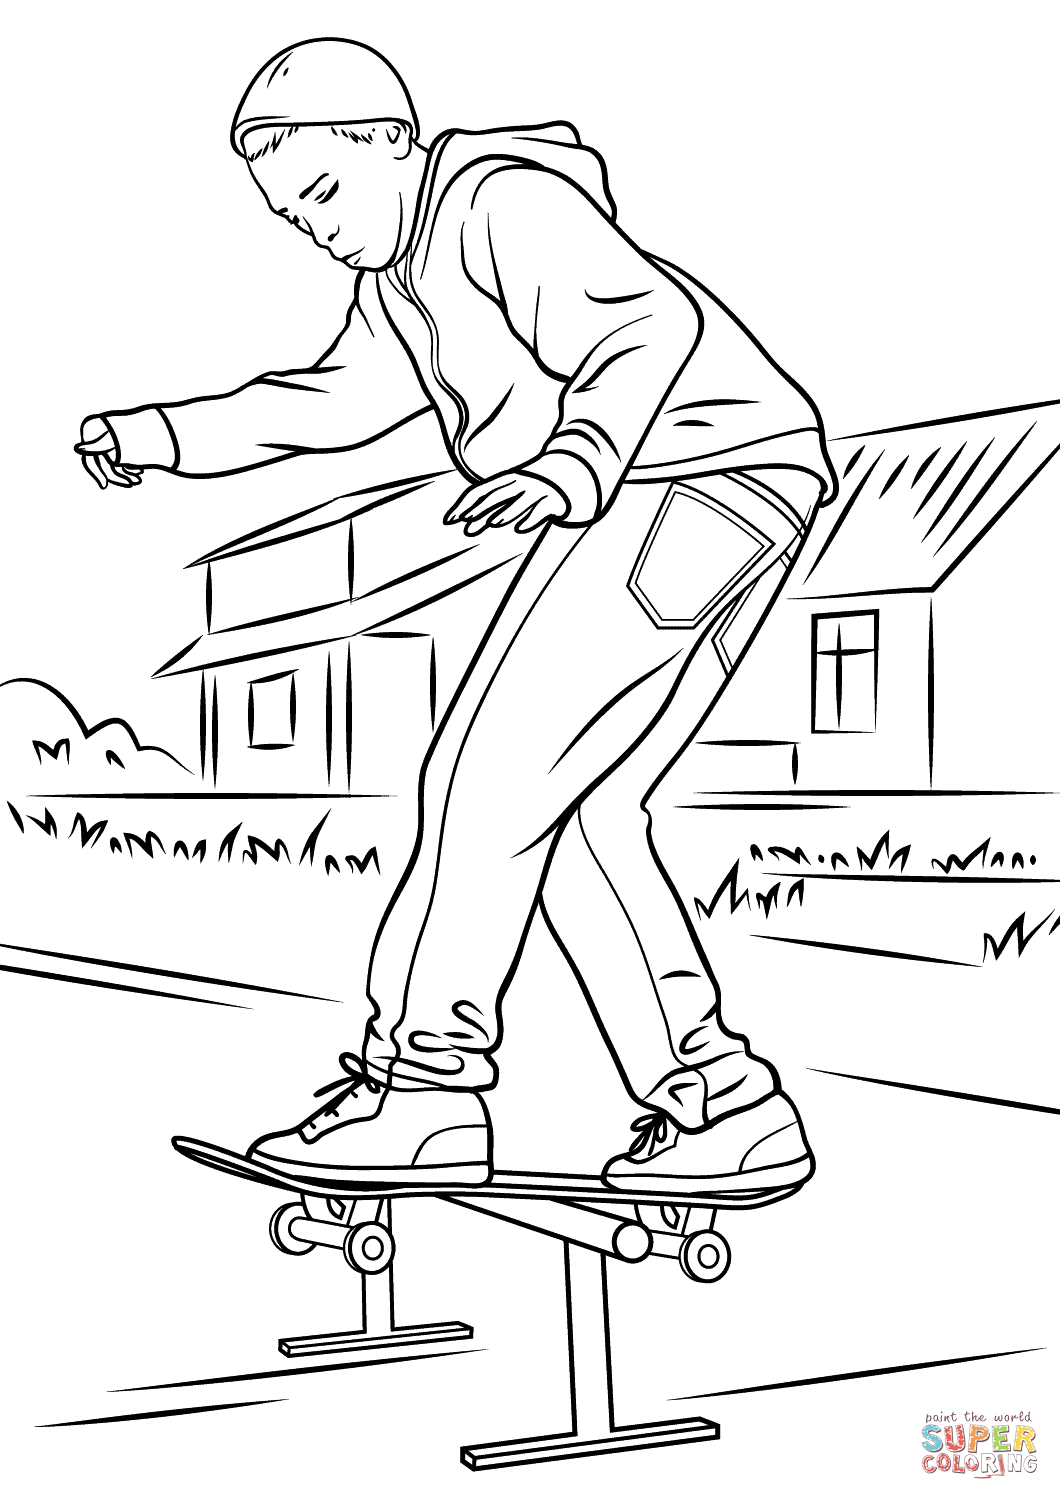 skateboard colouring pages skateboard coloring pages to download and print for free pages skateboard colouring